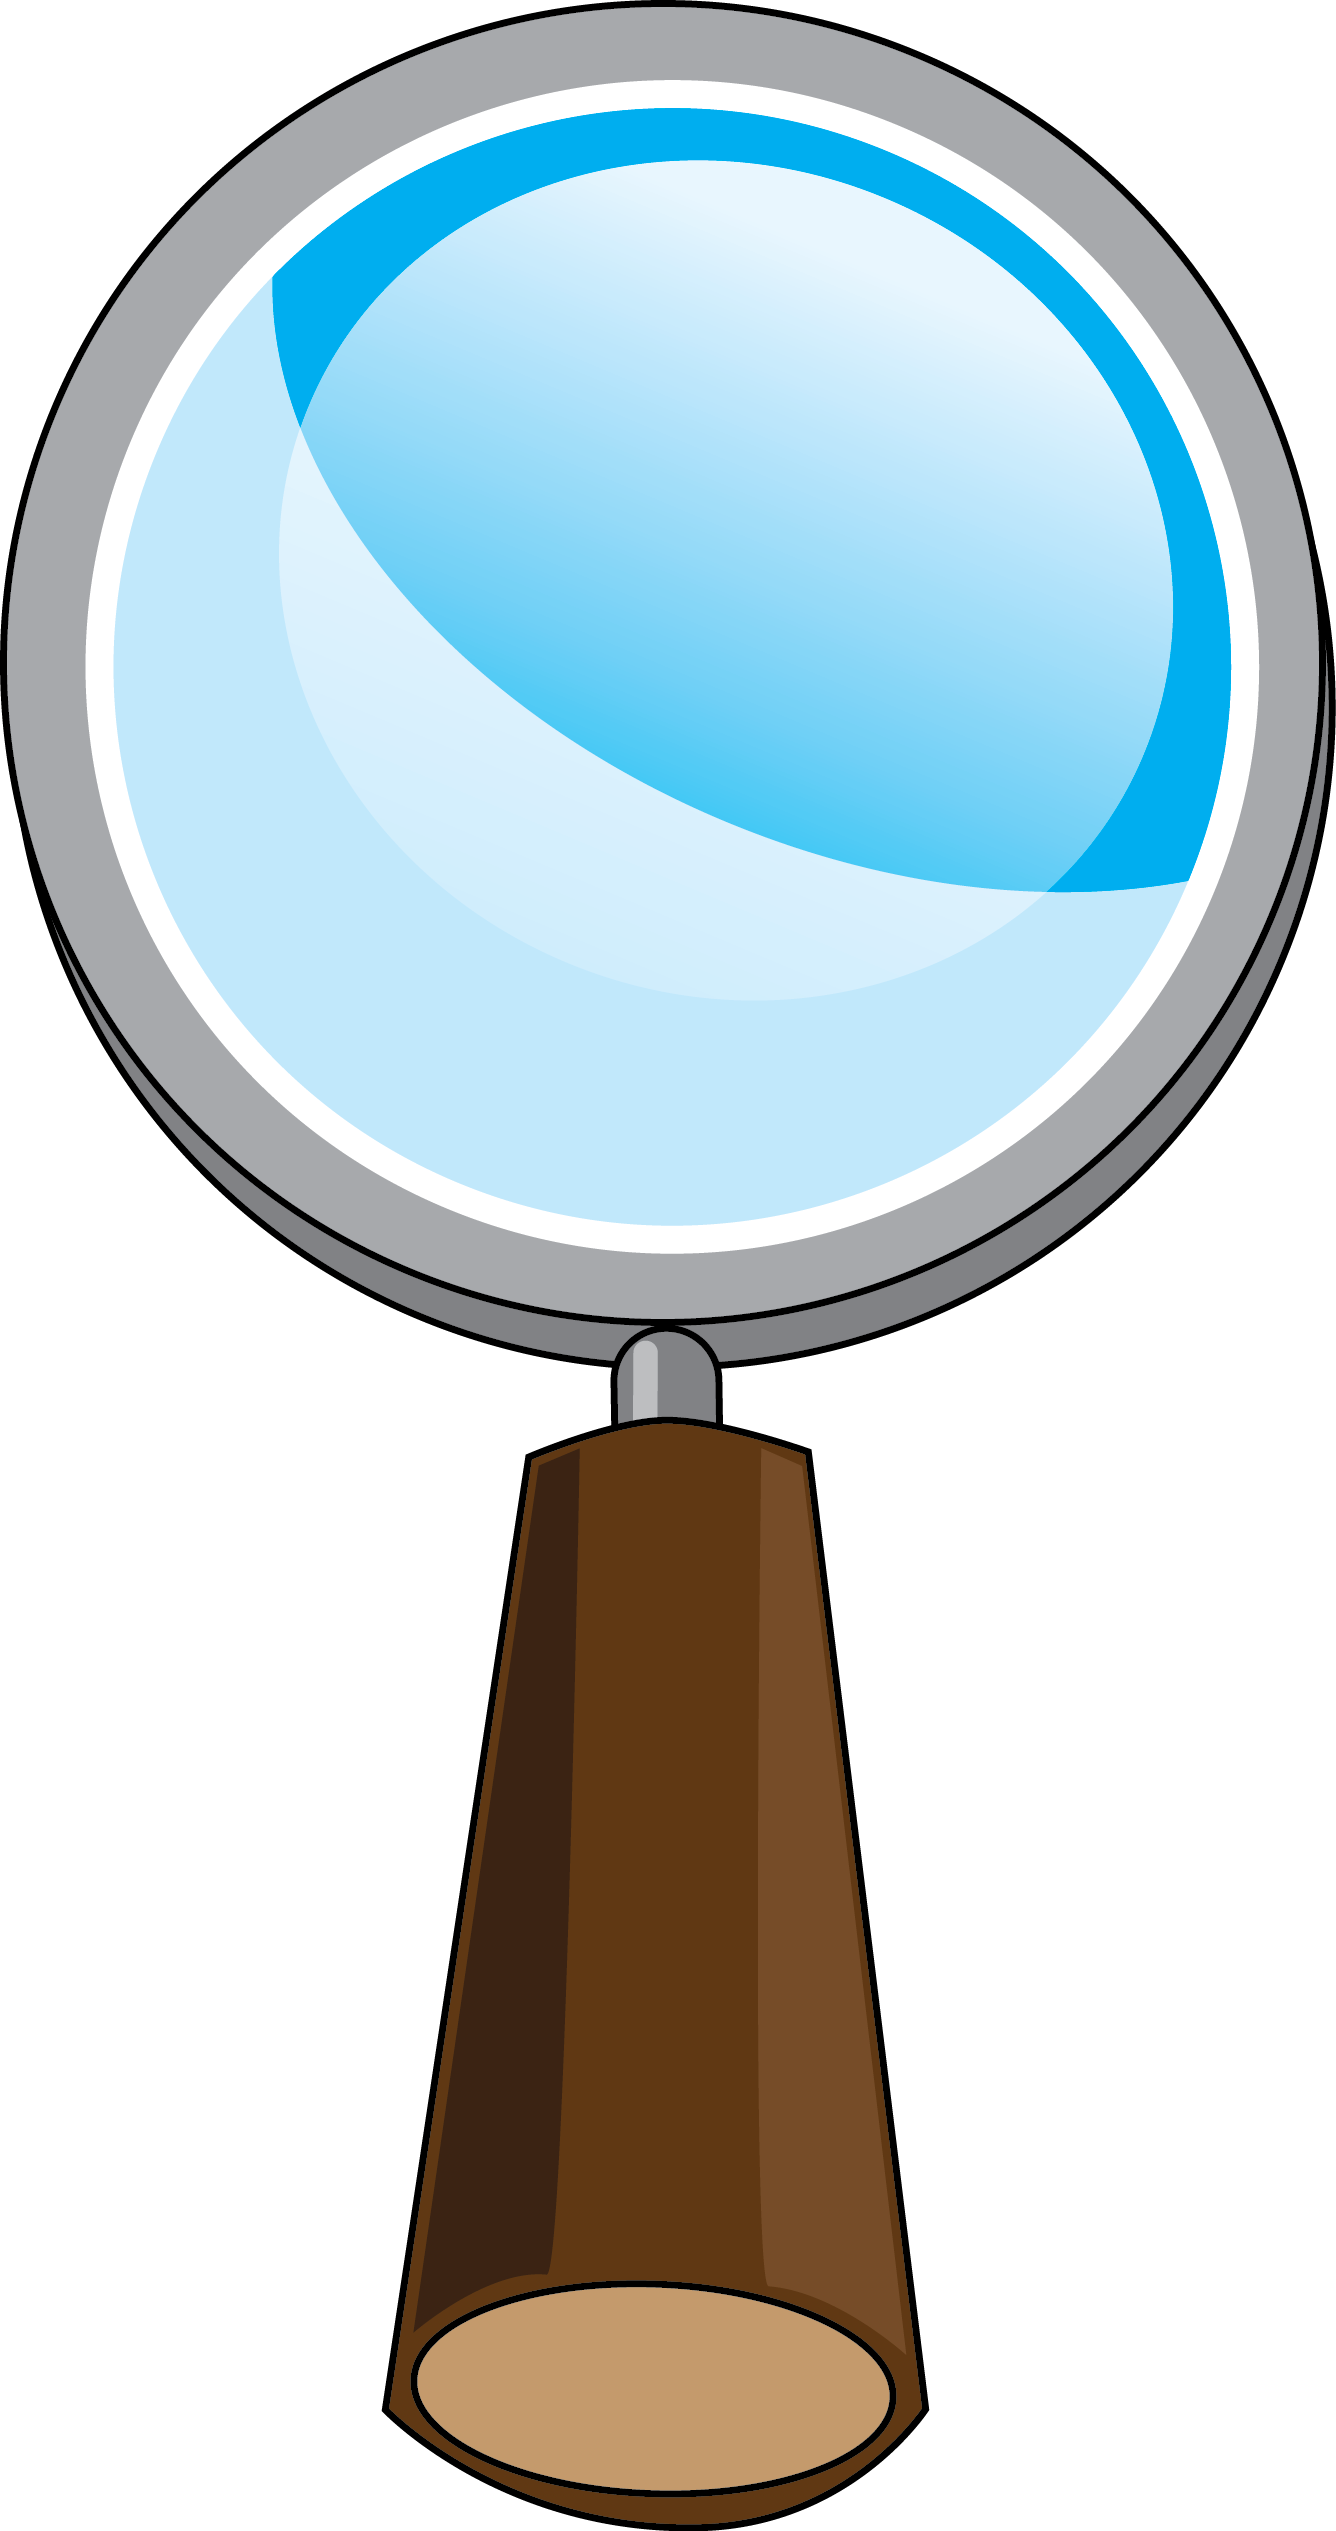 1336x2531 Magnifying Glass In Progress Clipart Clipart Image